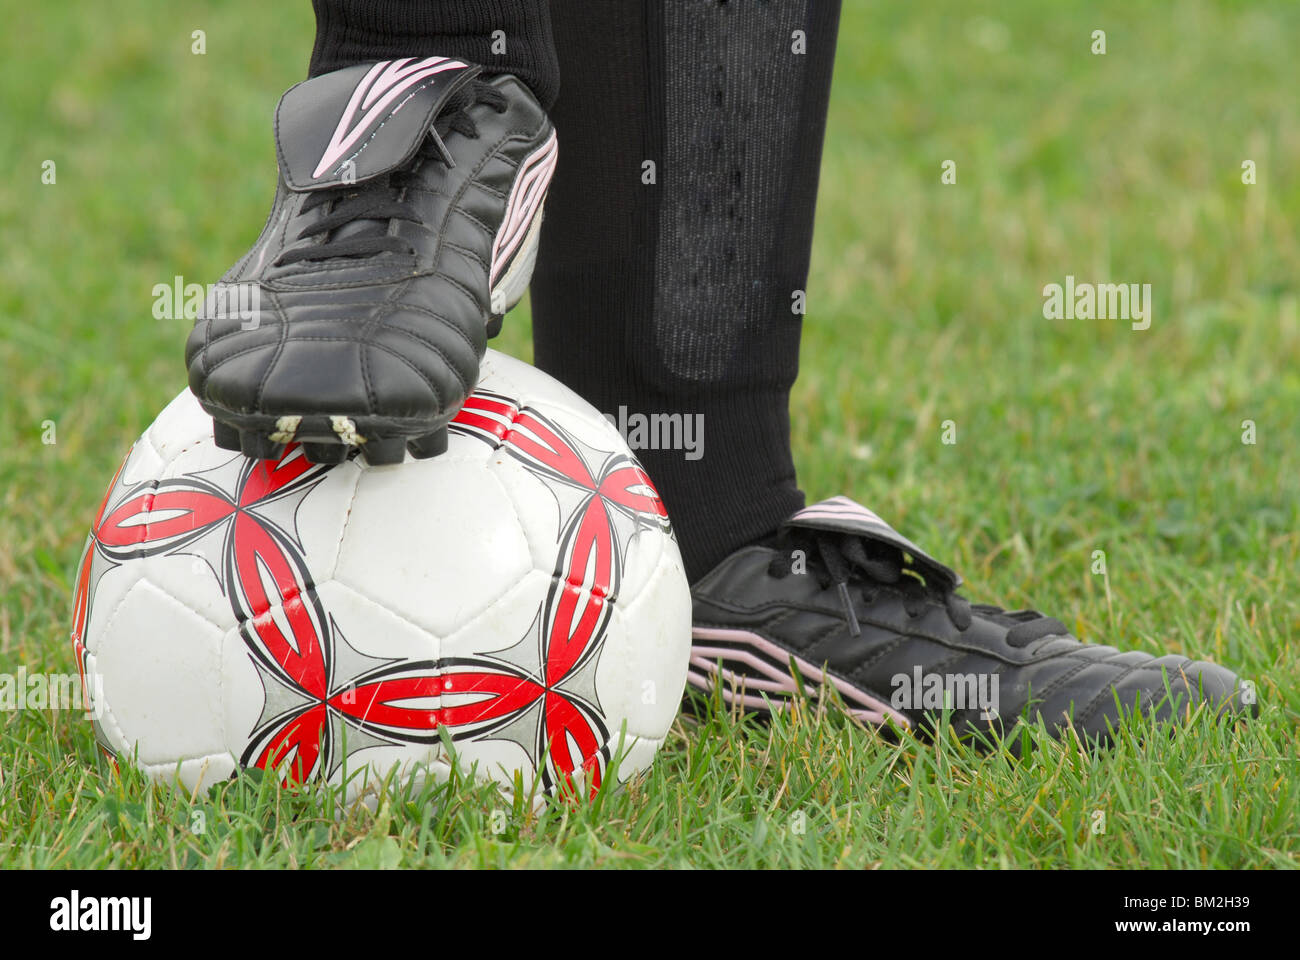 Close-up image of soccer ball and cleats with grass background - Stock Image